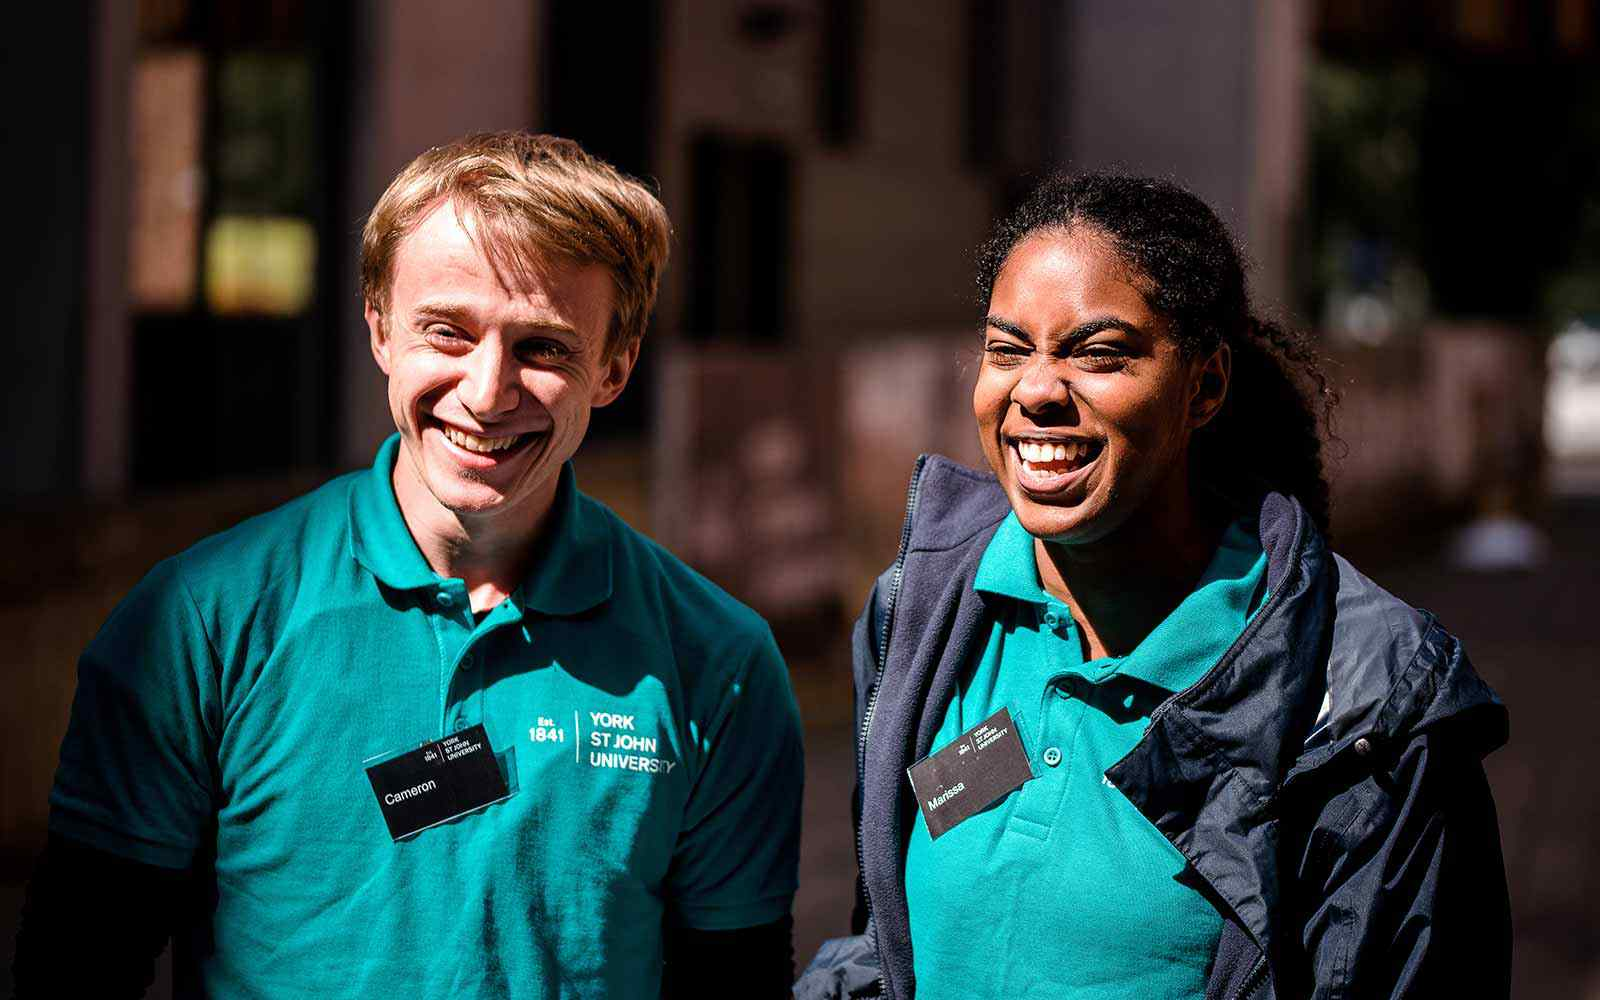 Student Ambassadors smiling at an open day on campus